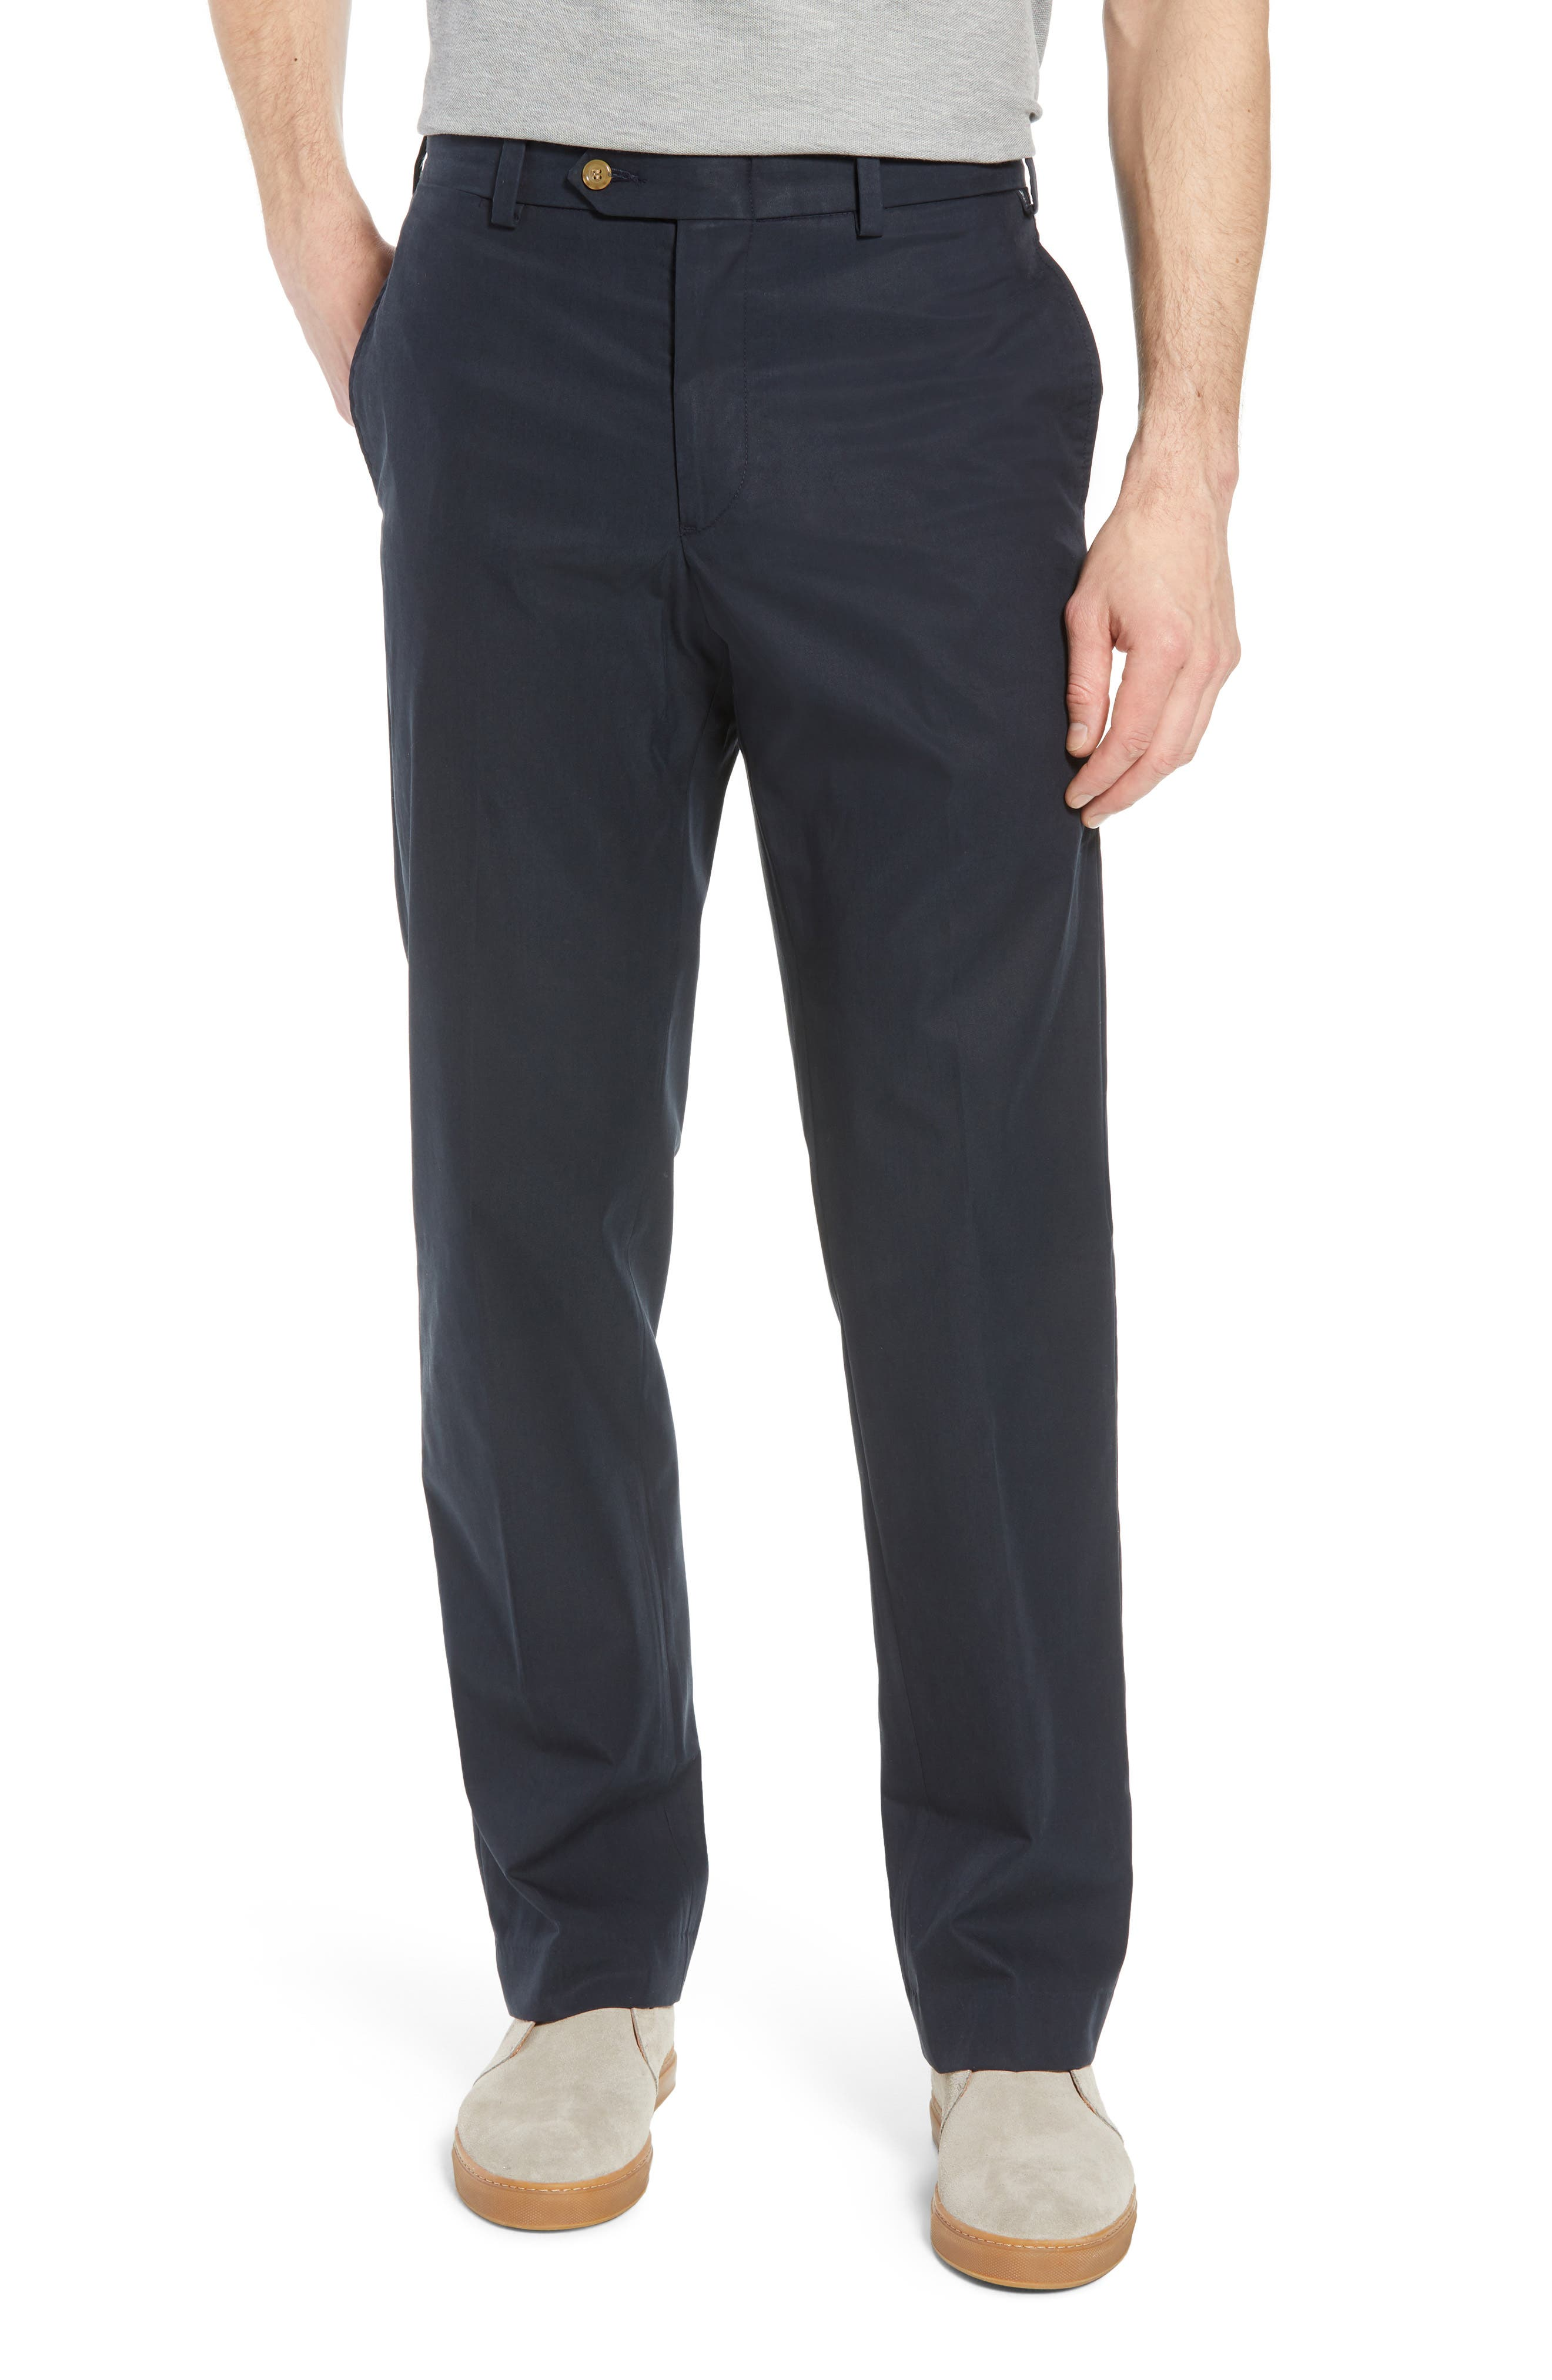 M2 Classic Fit Flat Front Travel Twill Pants,                             Main thumbnail 1, color,                             Navy